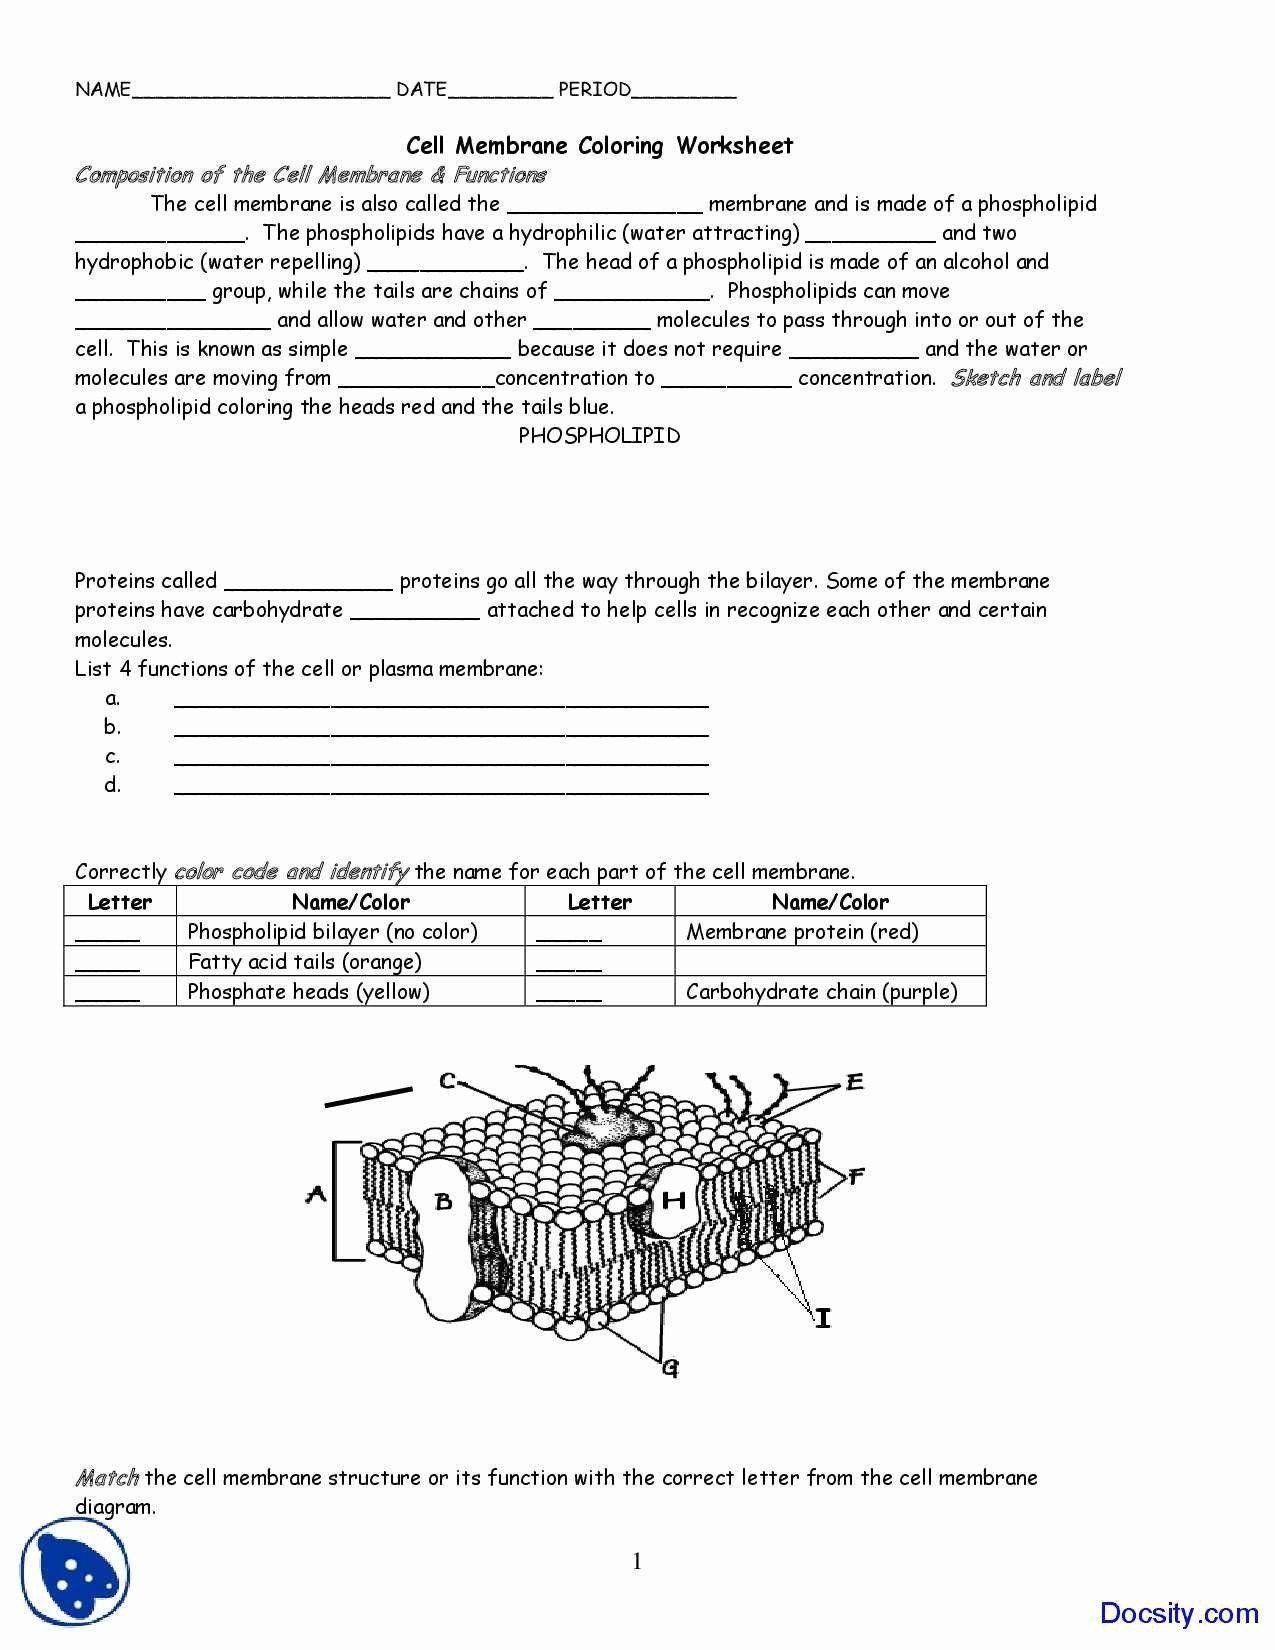 Plasma Membrane Coloring Worksheet Cell Membrane Coloring Worksheet Luxury Cell Membrane